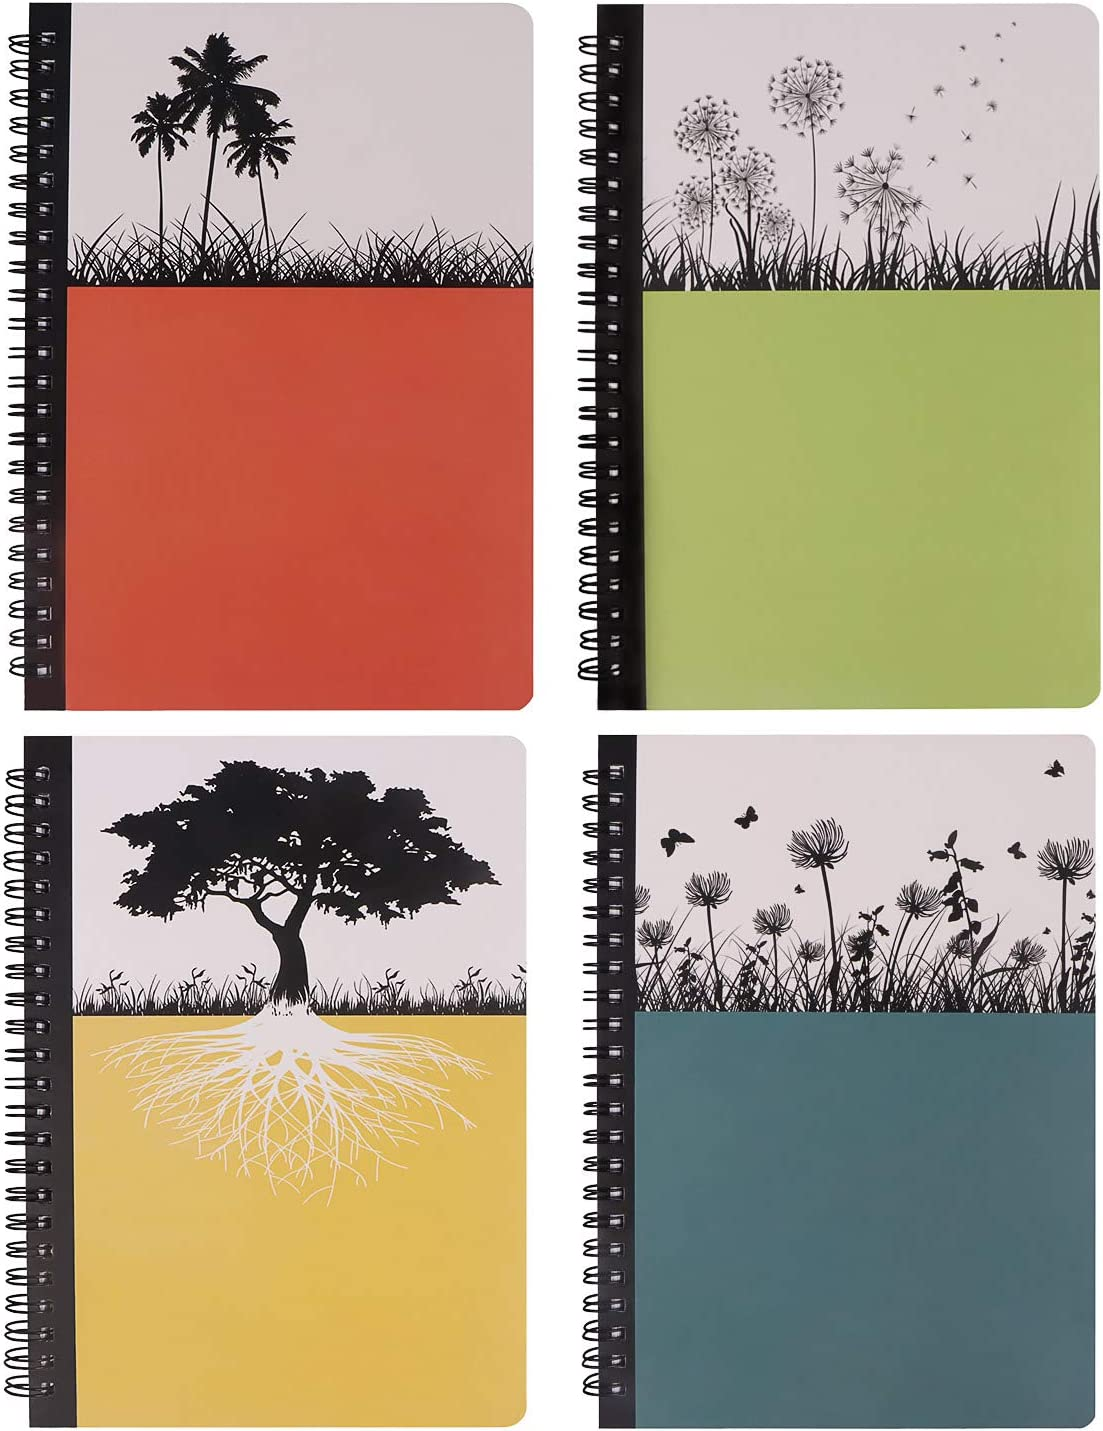 Hardcover Spiral Notebook, Dream Tree Journal to Write in, Blank Diary, Composition Notebook College ruled 80 Sheets, 9.8 x 7.1inch, 4 Pack